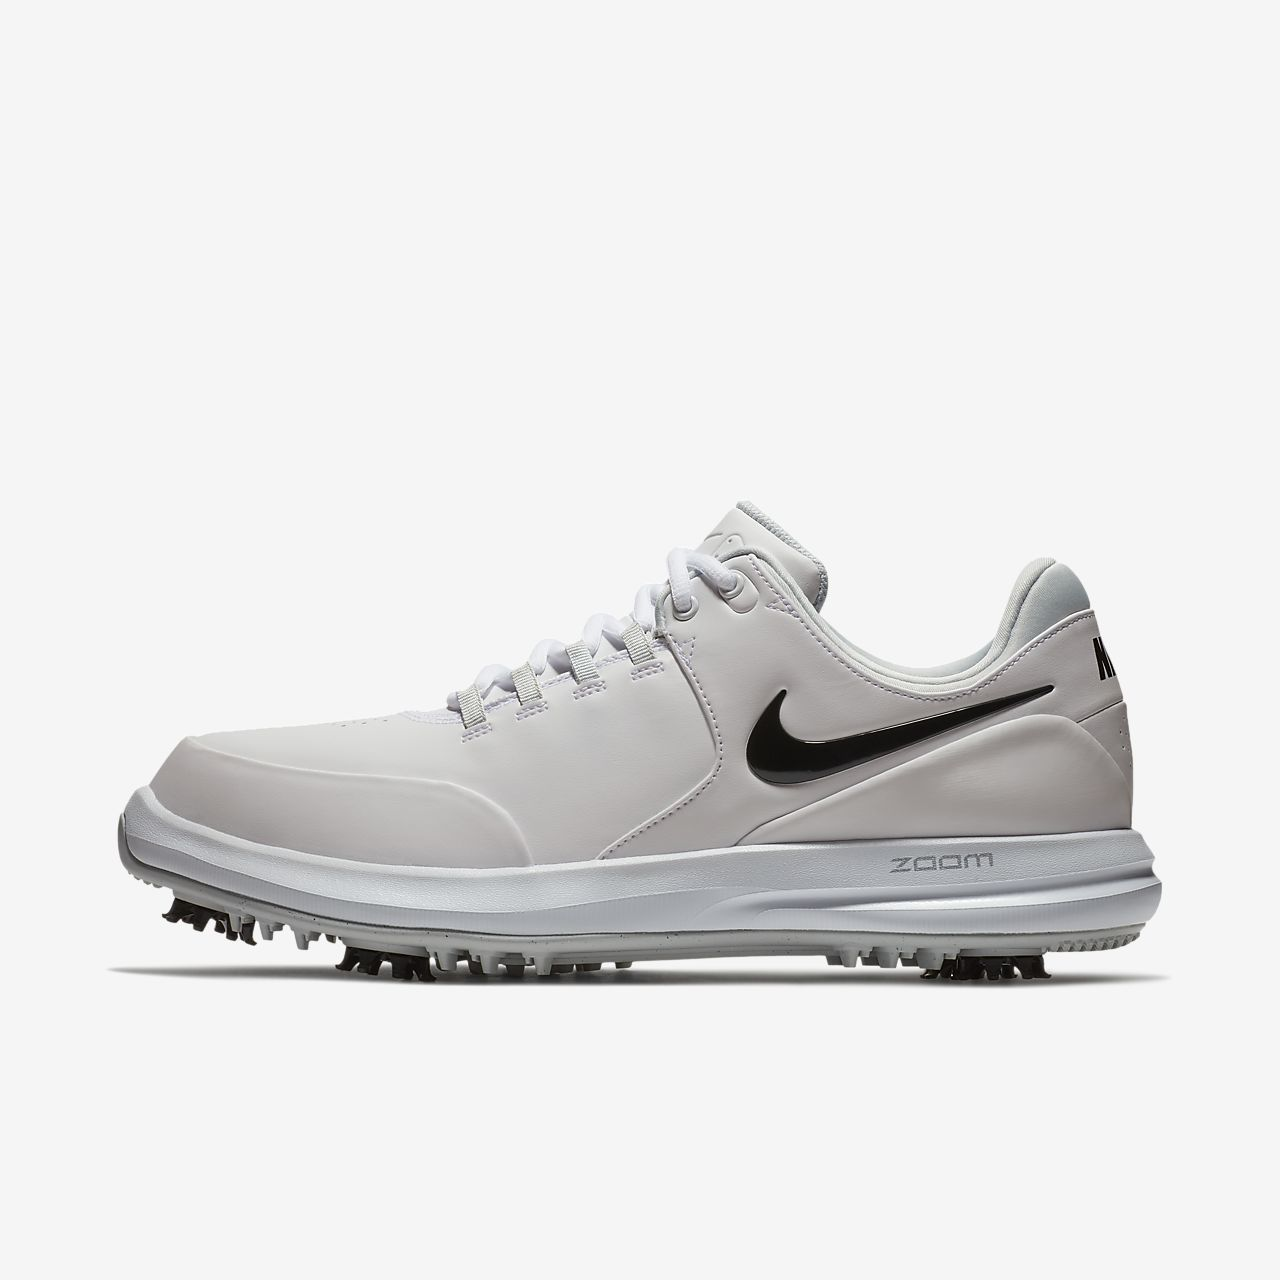 fd2fc6fb2a40 Nike Air Zoom Accurate Men s Golf Shoe. Nike.com DK